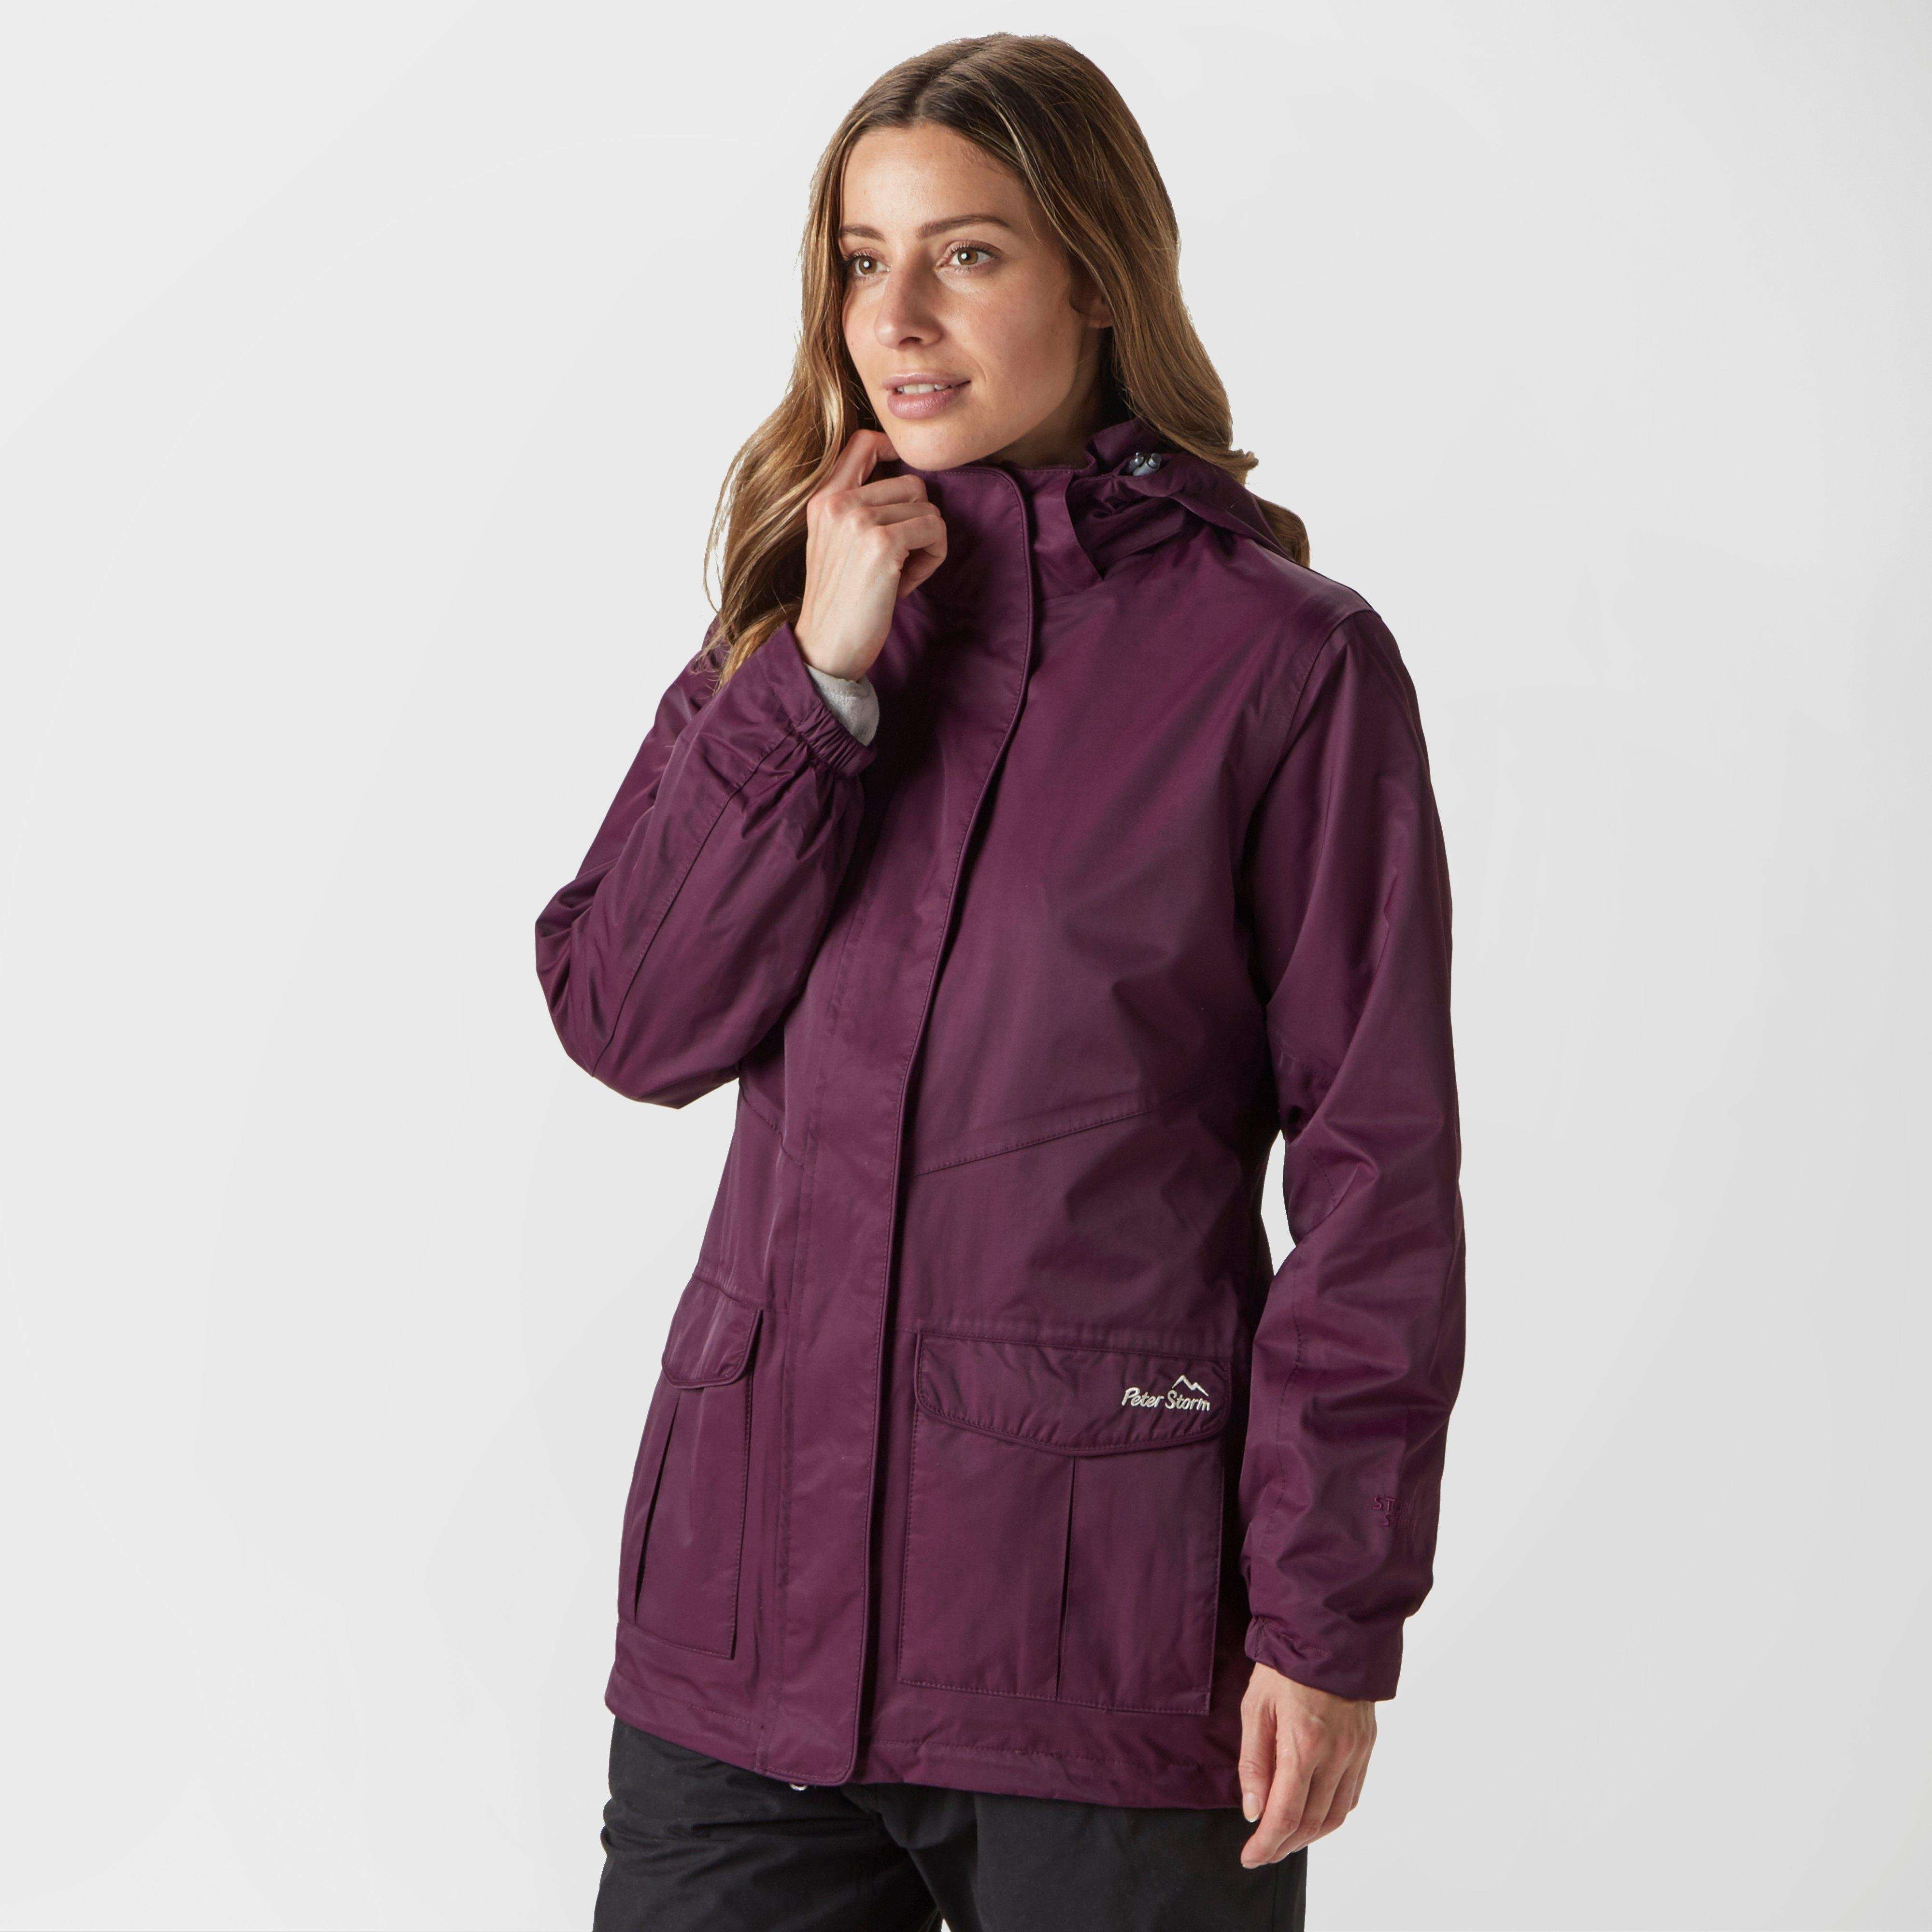 PETER STORM Women's View 3 in 1 Jacket